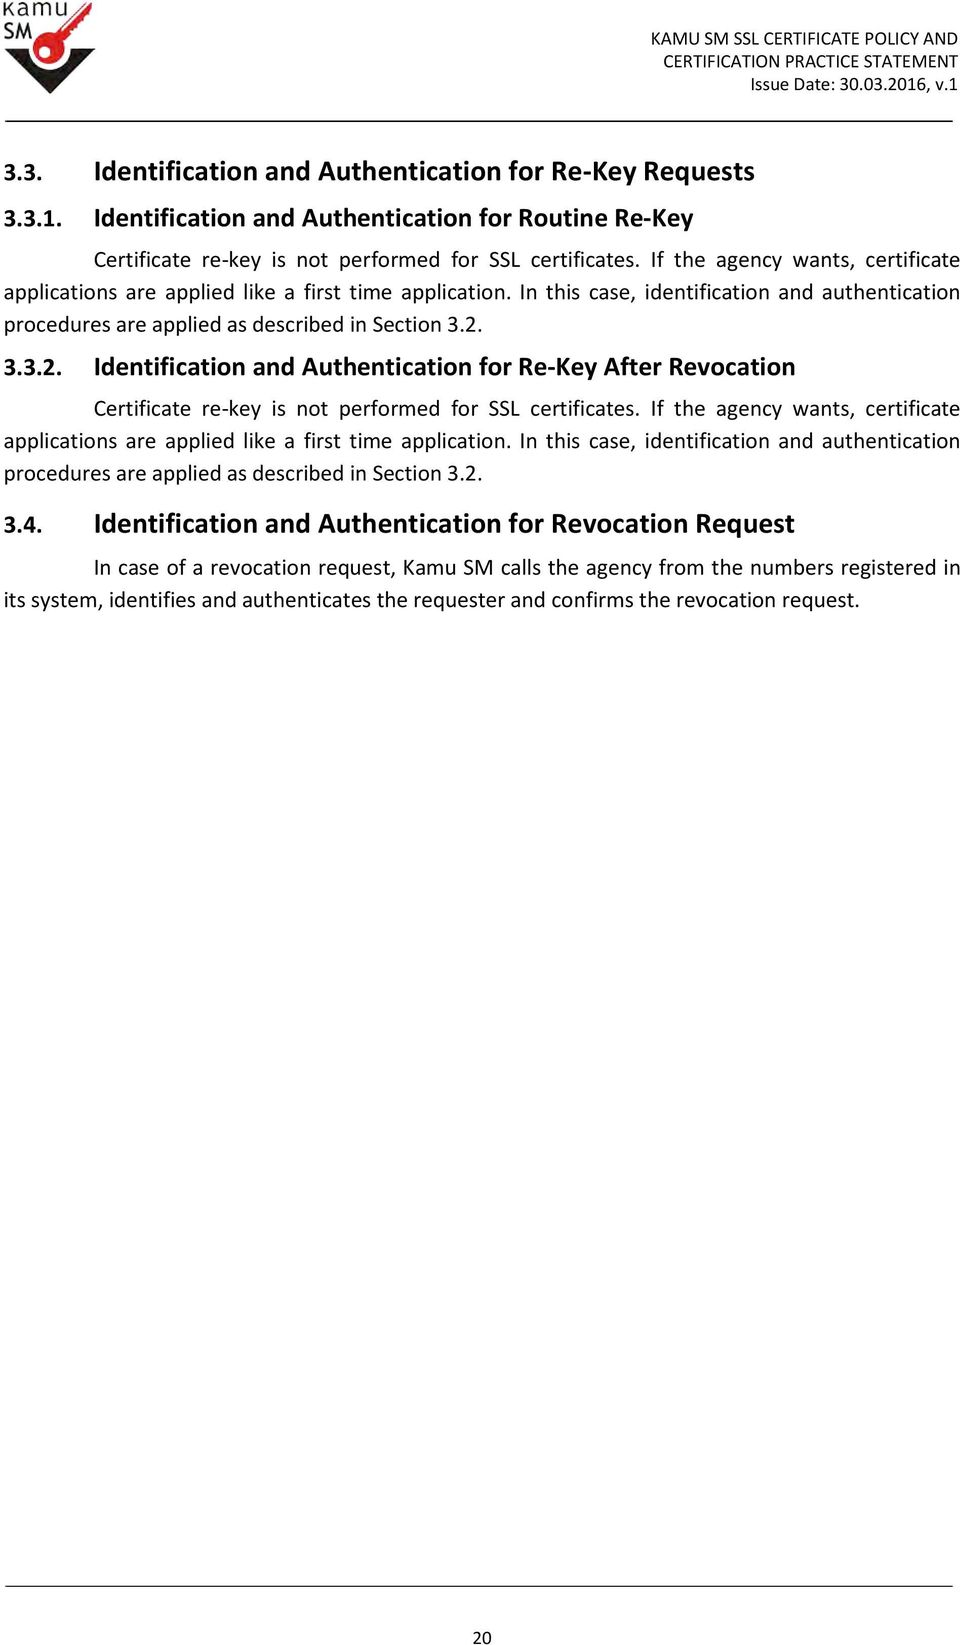 3.3.2. Identification and Authentication for Re-Key After Revocation Certificate re-key is not performed for SSL certificates.  3.4.